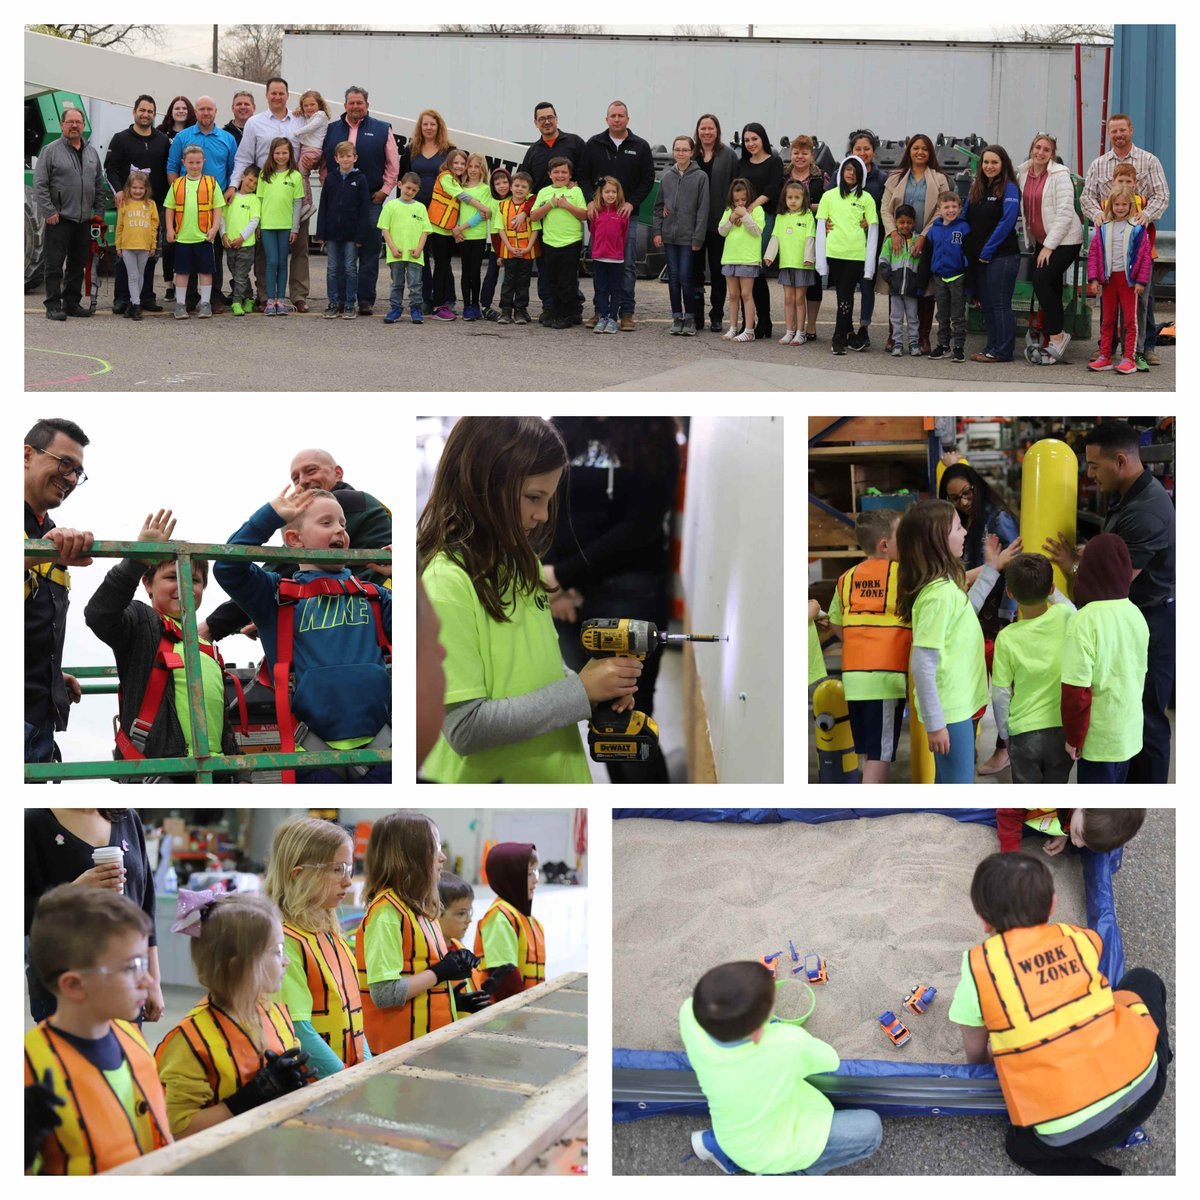 test Twitter Media - Today, Ideal celebrated #takeyourchildtoworkday! The children participated in several activities that allowed them to better understand the construction industry. https://t.co/Bo6XqPfMTO